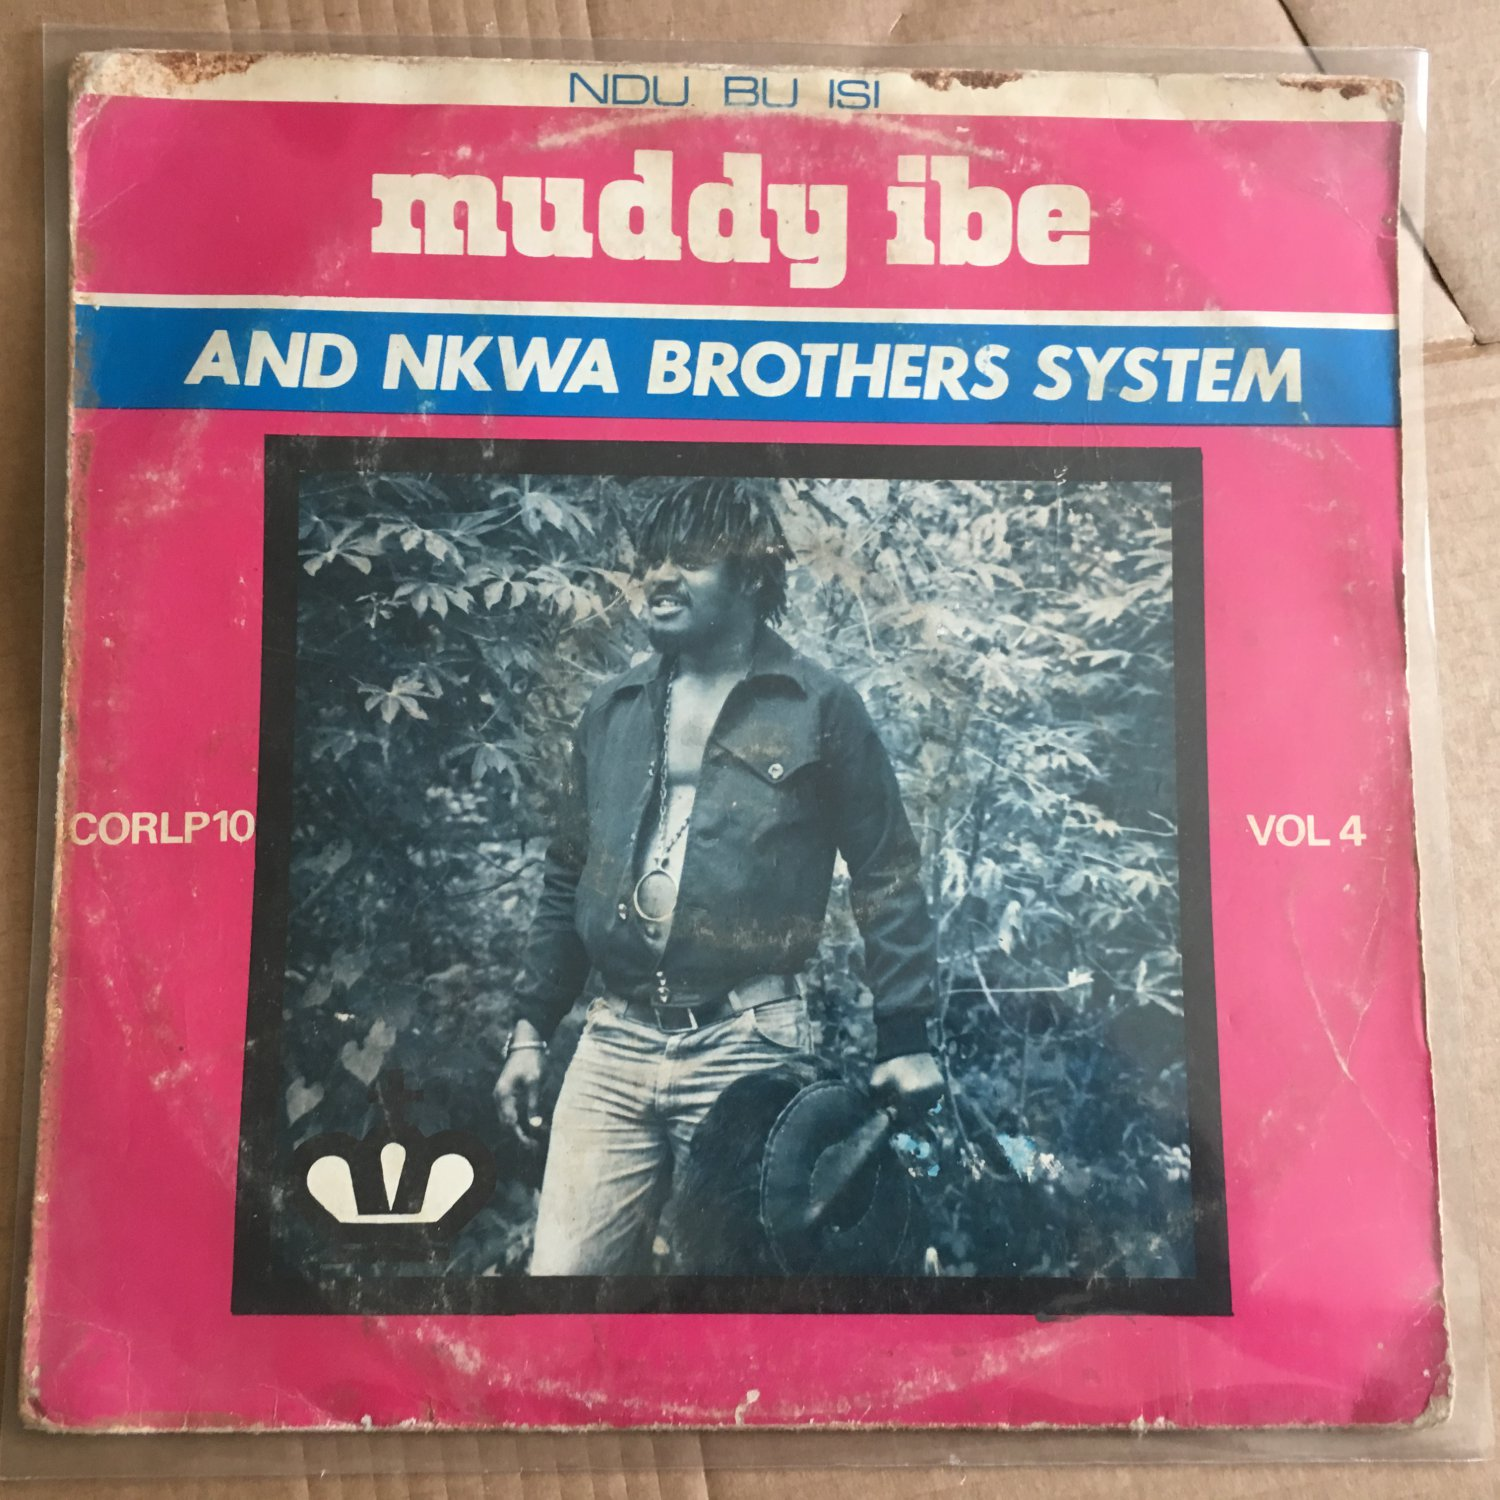 MUDDY IBE & NKWA BROTHERS SYSTEM LP vol. 4 NIGERIA HIGHLIFE mp3 LISTEN